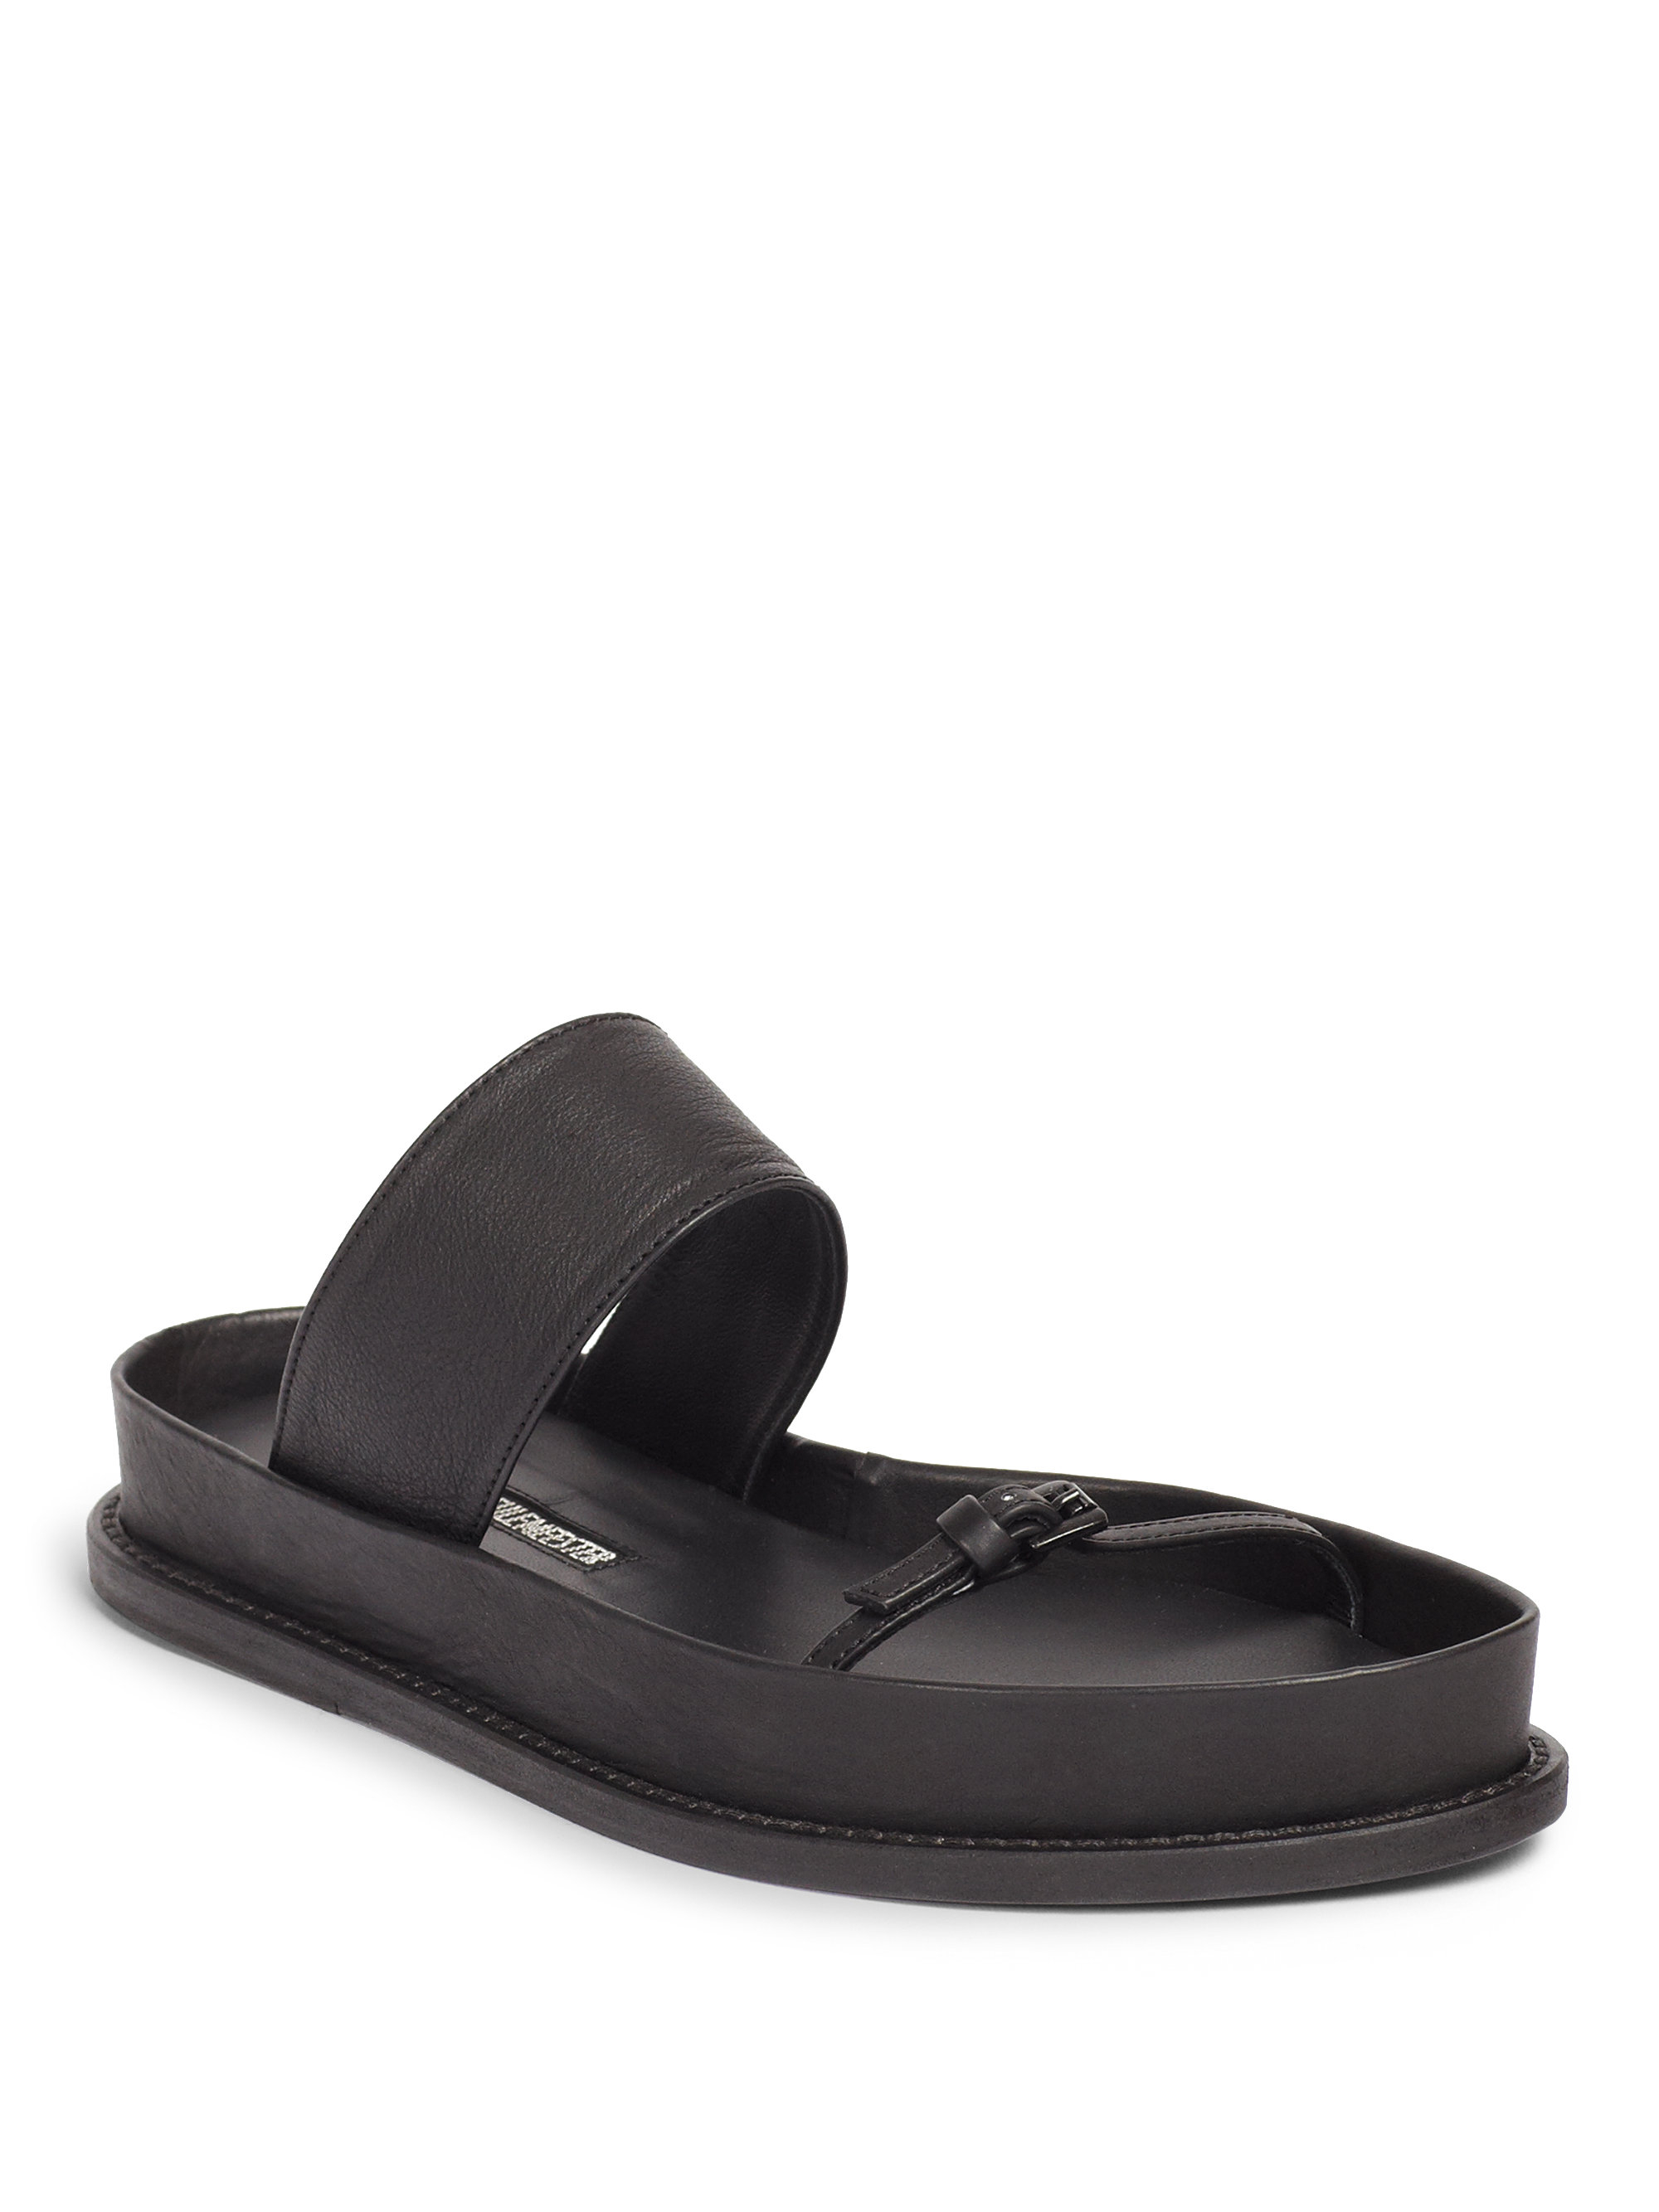 ANN DEMEULEMEESTER Leather Sandals Outlet Locations Online Buy Cheap For Sale Popular Sale Online Cheap Prices Reliable Cheap Nicekicks l8l66LgI